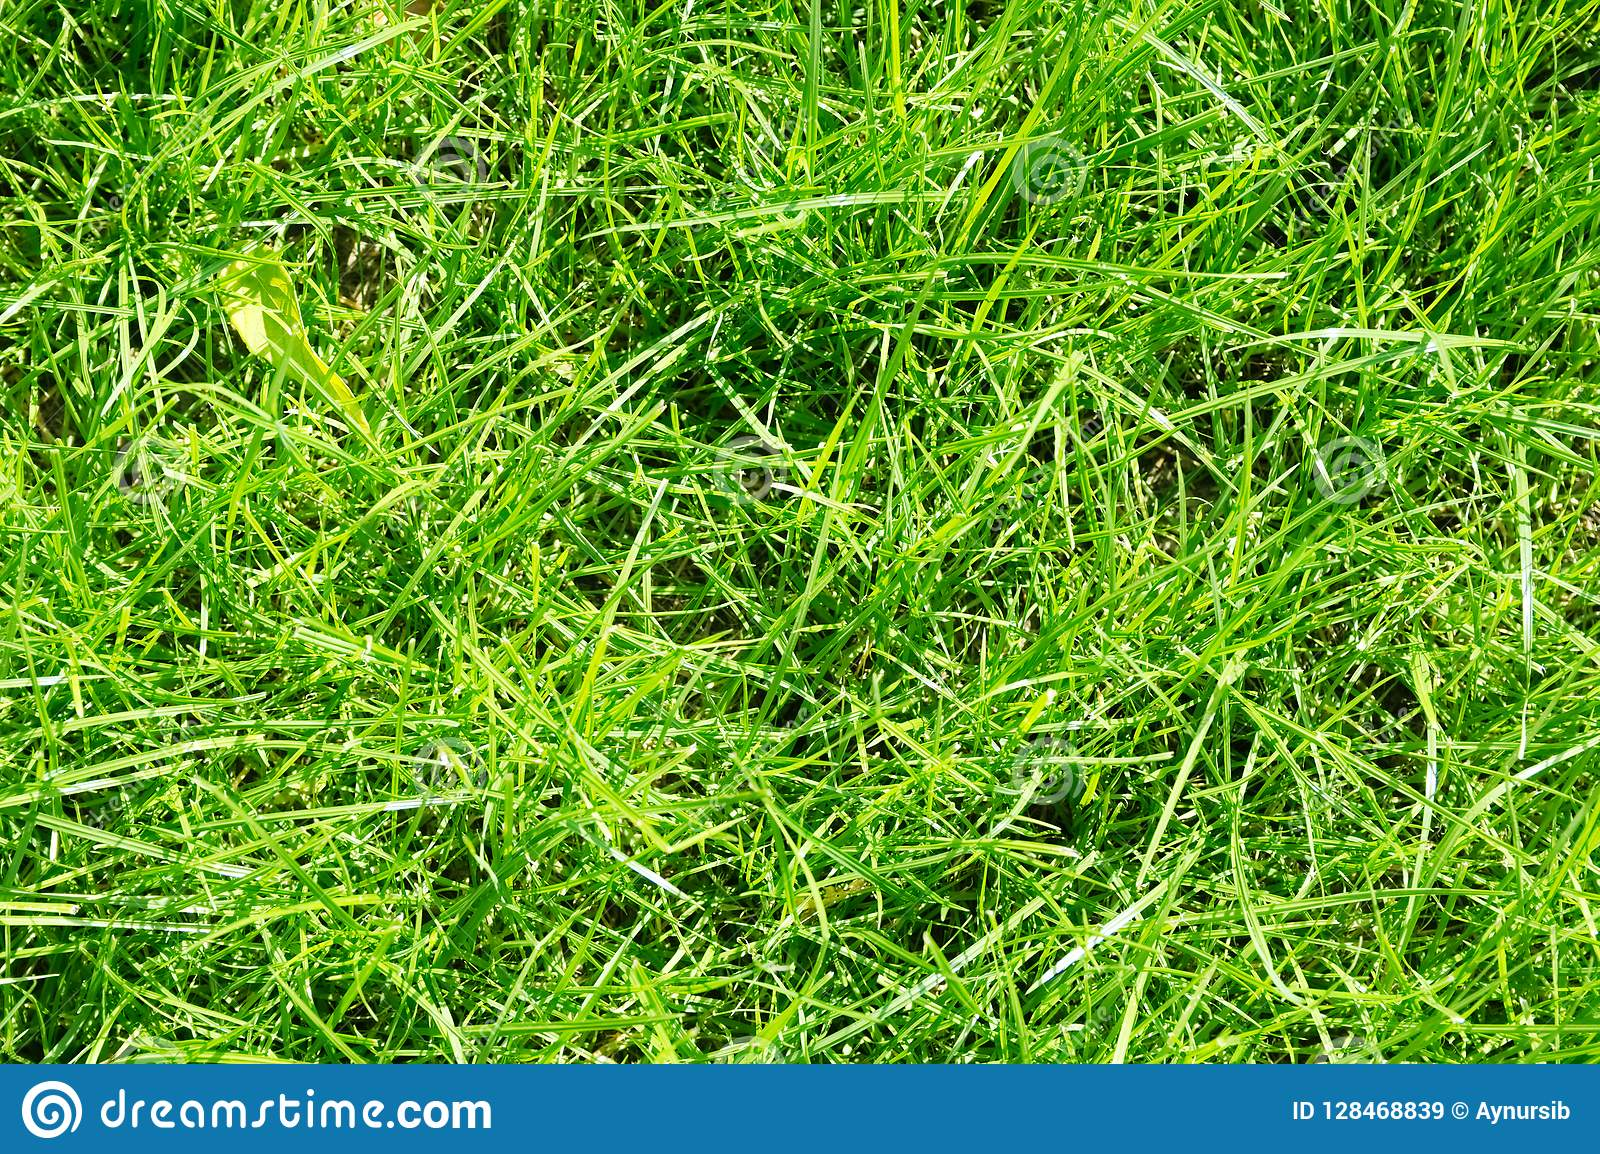 Lawn background. fresh green grass in garden. vividly bright green carpet outdoor. decorative plant for landscaping